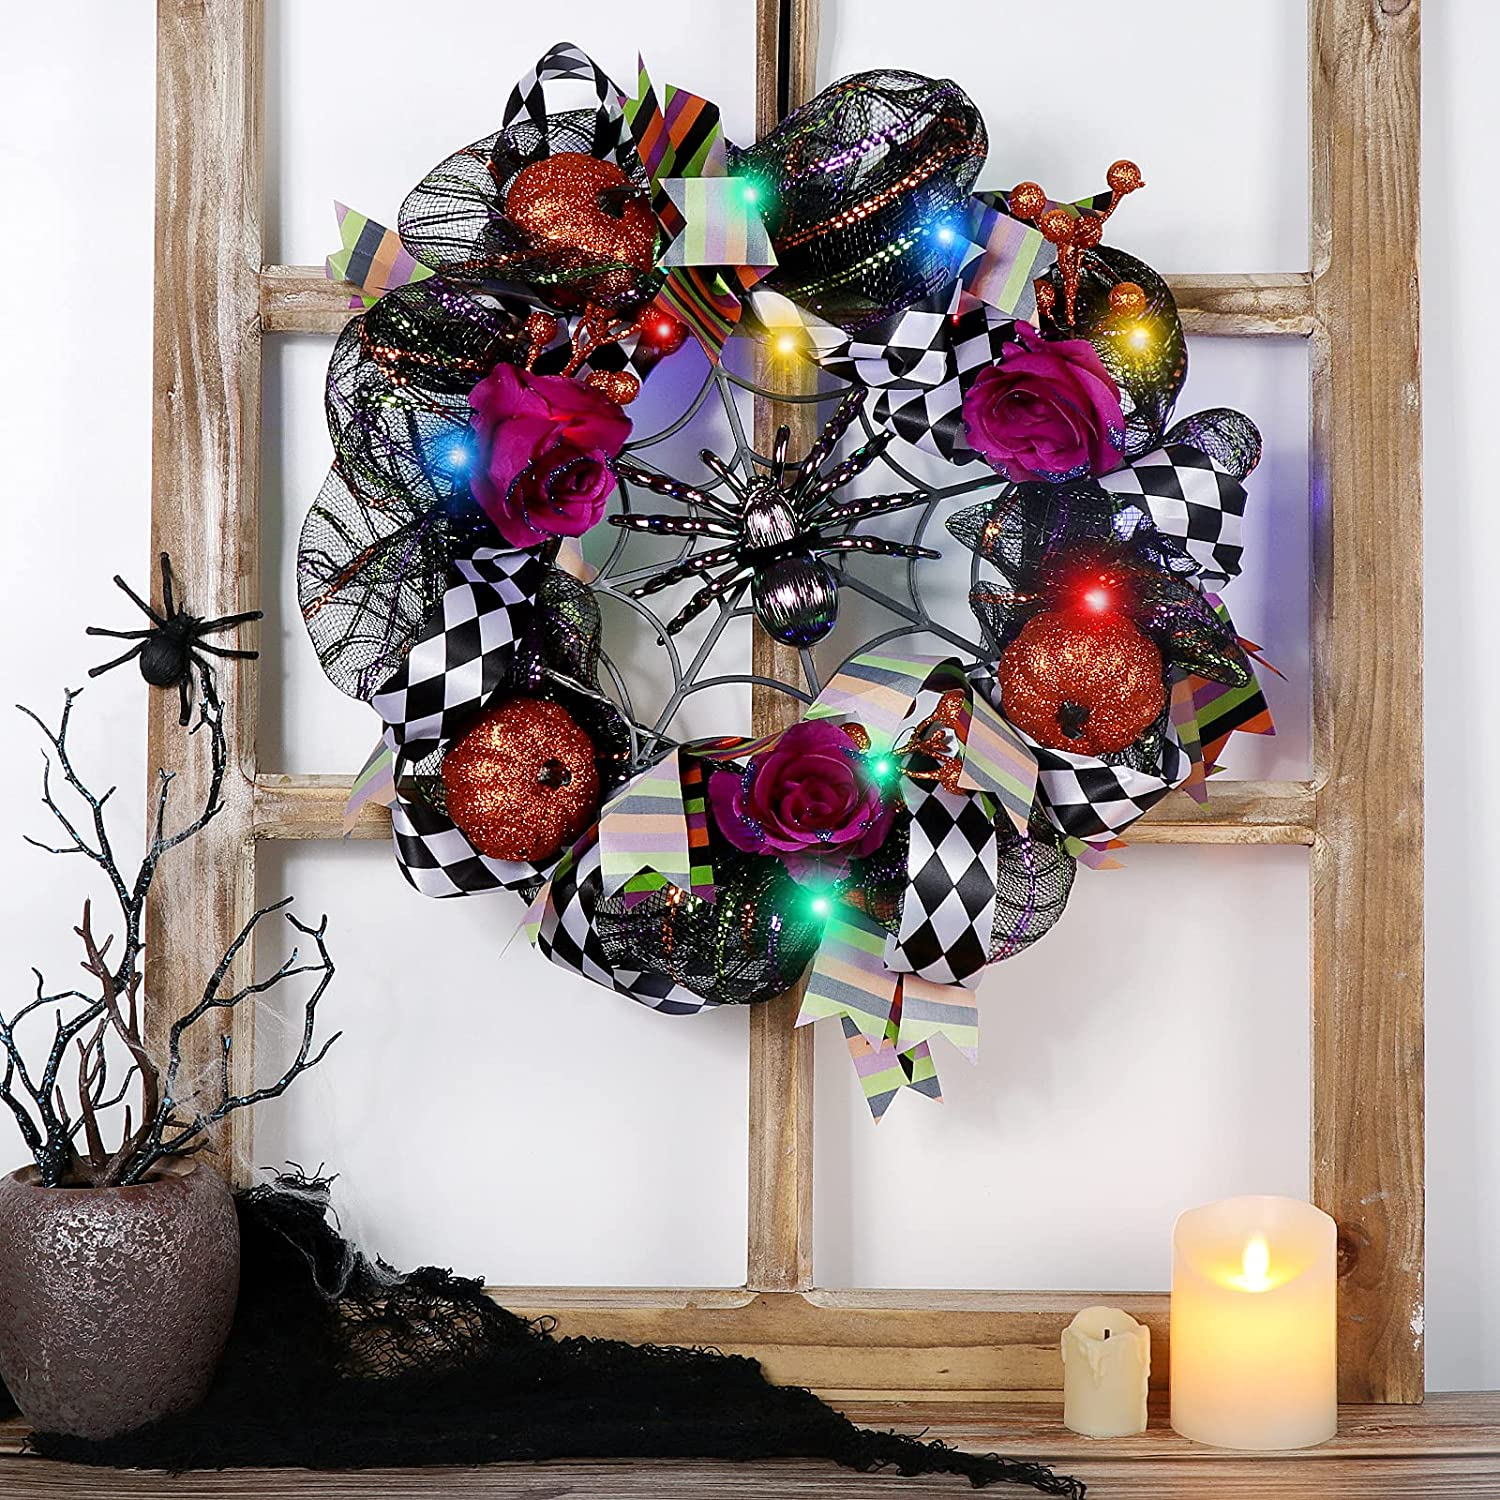 PIKRONSH latest New color 16 Inch Halloween Wreath Deco Lights with Mesh